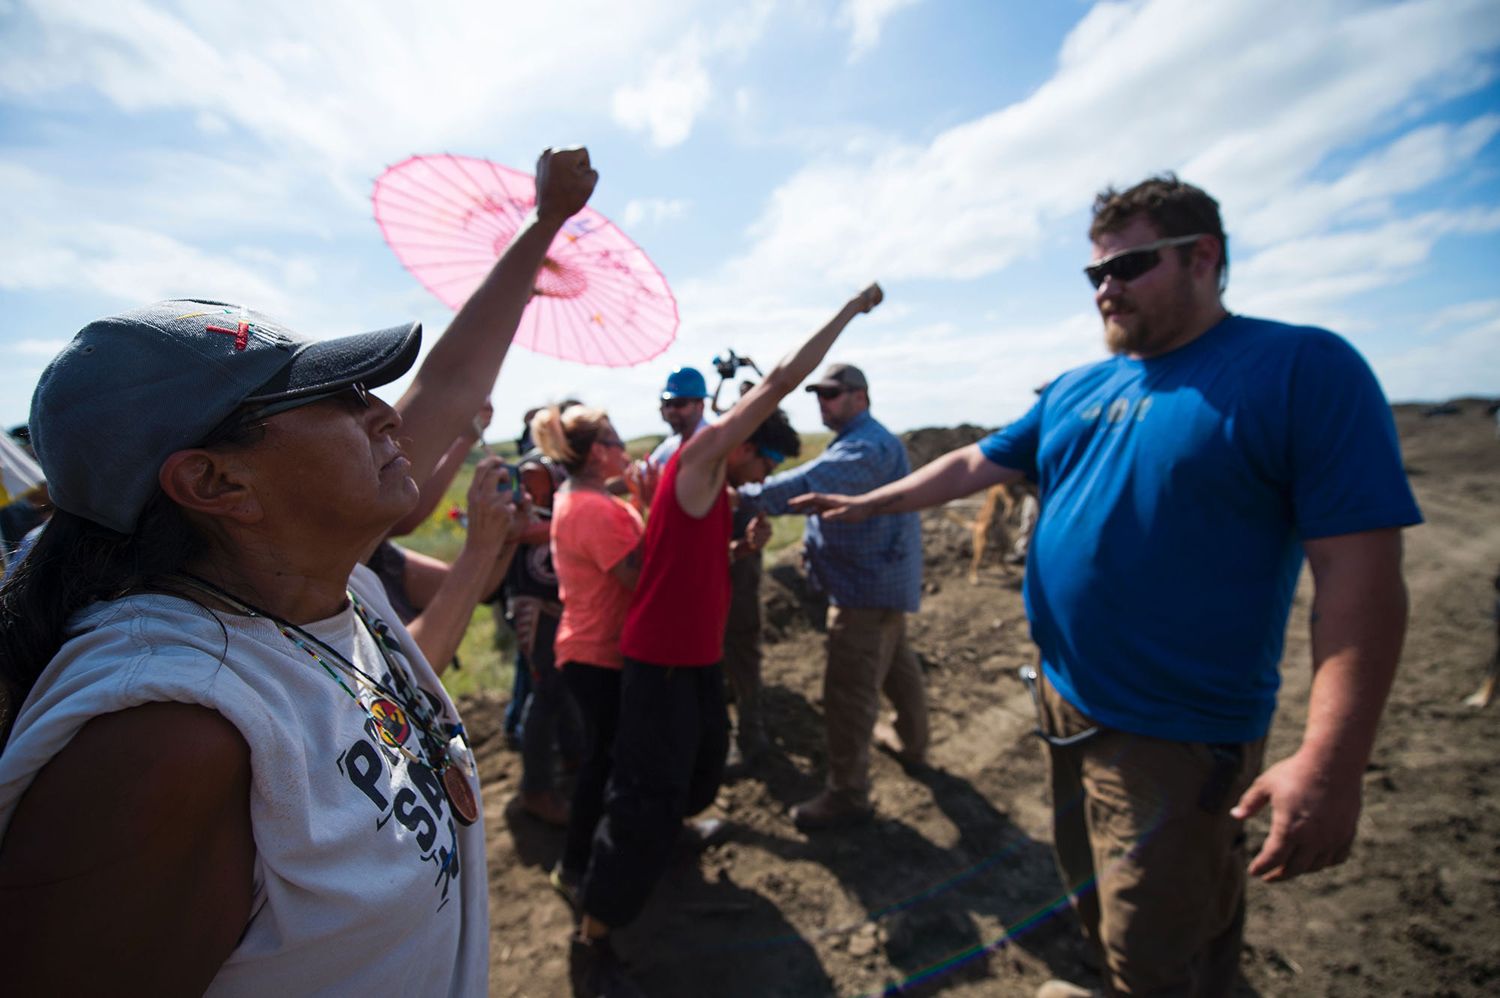 A Native American protestors holds up his arms as he and other protestors are threatened by private security guards and guard dogs, at a work site  for the Dakota Access Pipeline (DAPL) oil pipeline, near Cannon Ball, North Dakota, September 3, 2016.   Hundreds of Native American protestors and their supporters, who fear the Dakota Access Pipeline will polluted their water, forced construction workers and security forces to retreat and work to stop. / AFP / Robyn BECK        (Photo credit should read ROBYN BECK/AFP/Getty Images)